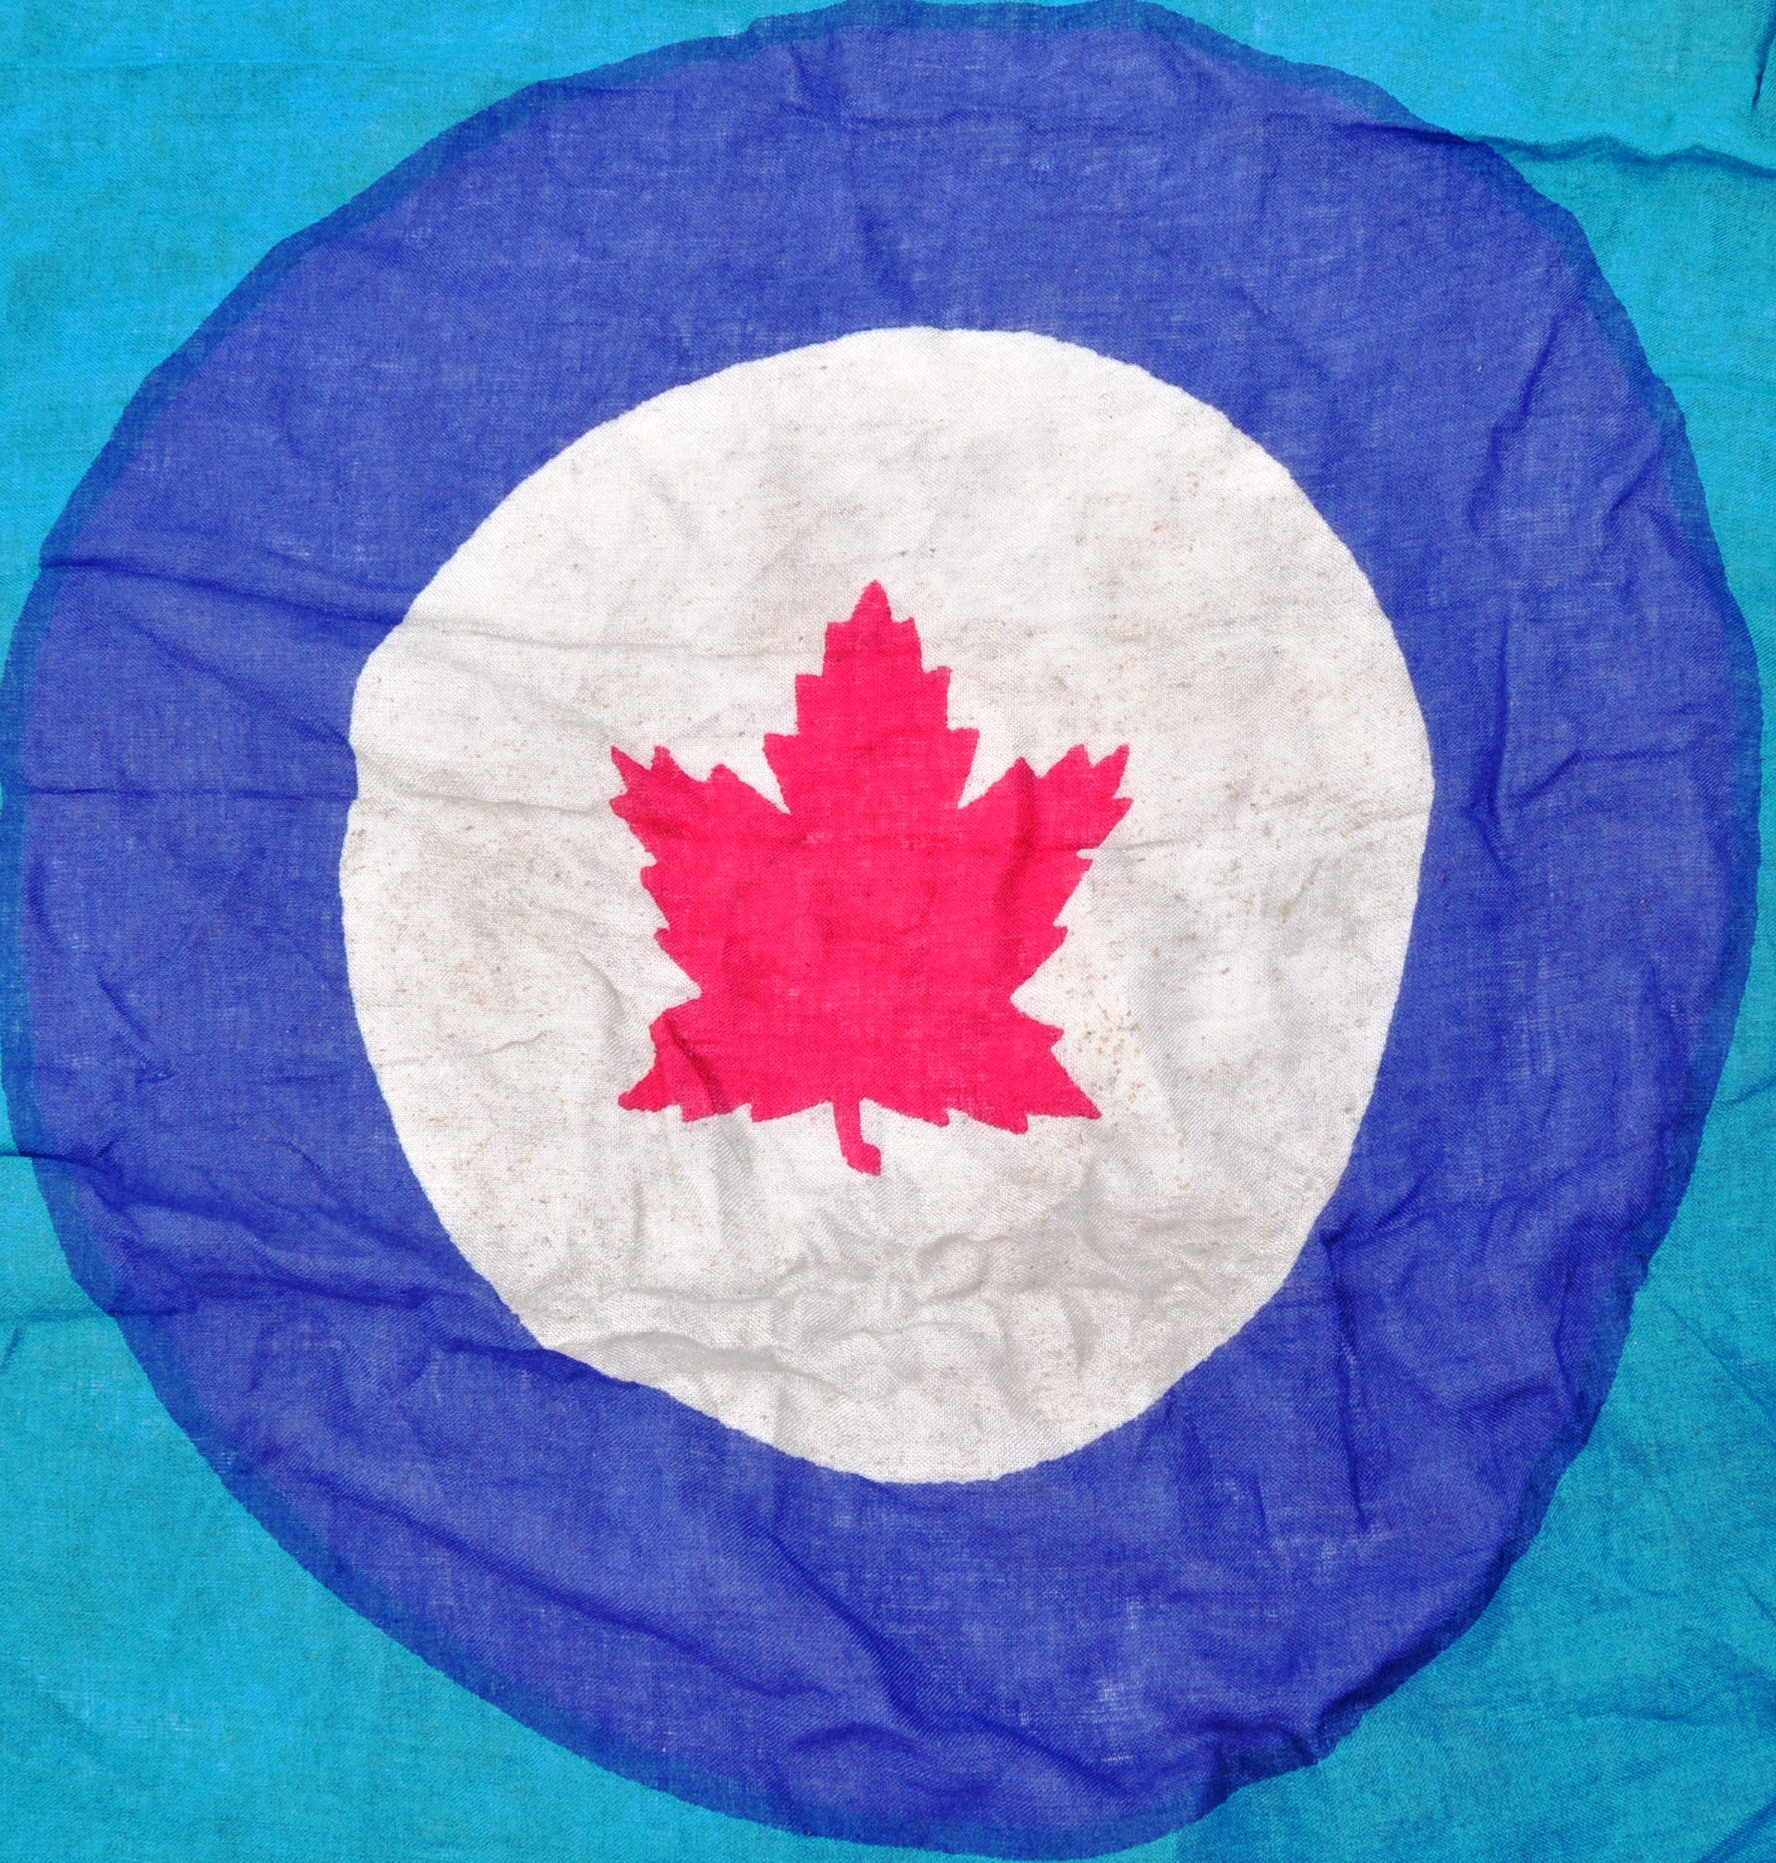 WWII SECOND WORLD WAR TYPE RCAF CANADIAN AIR FORCE BASE FLAG - Image 6 of 7